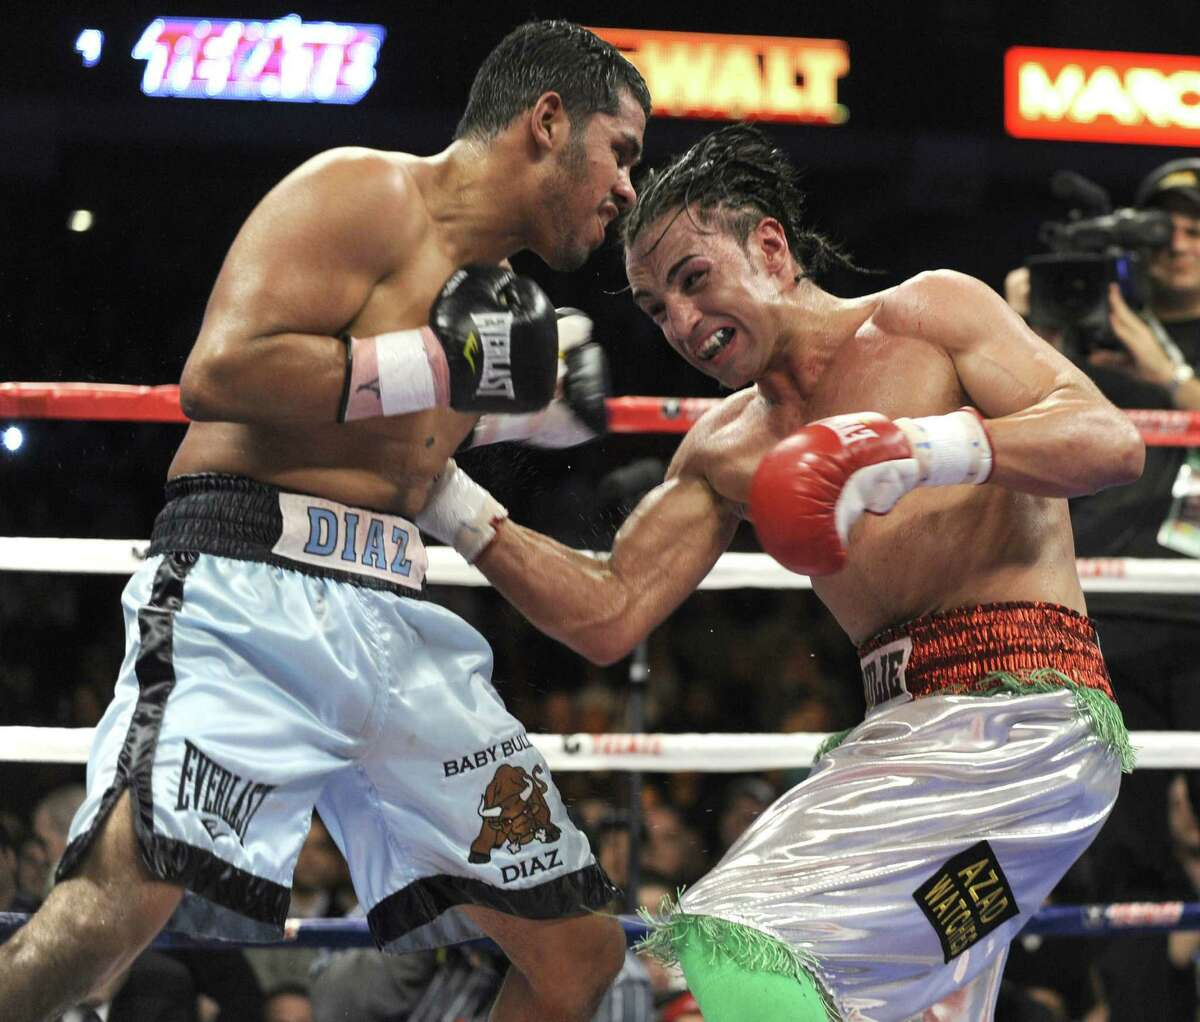 Juan 'Baby Bull' Diaz (left), fighting Paulie Malignaggi in 2009, will fight Pipino Cuevas Jr. on April 13 at Corpus Christi's American Bank Center in his first bout after a two-year retirement.